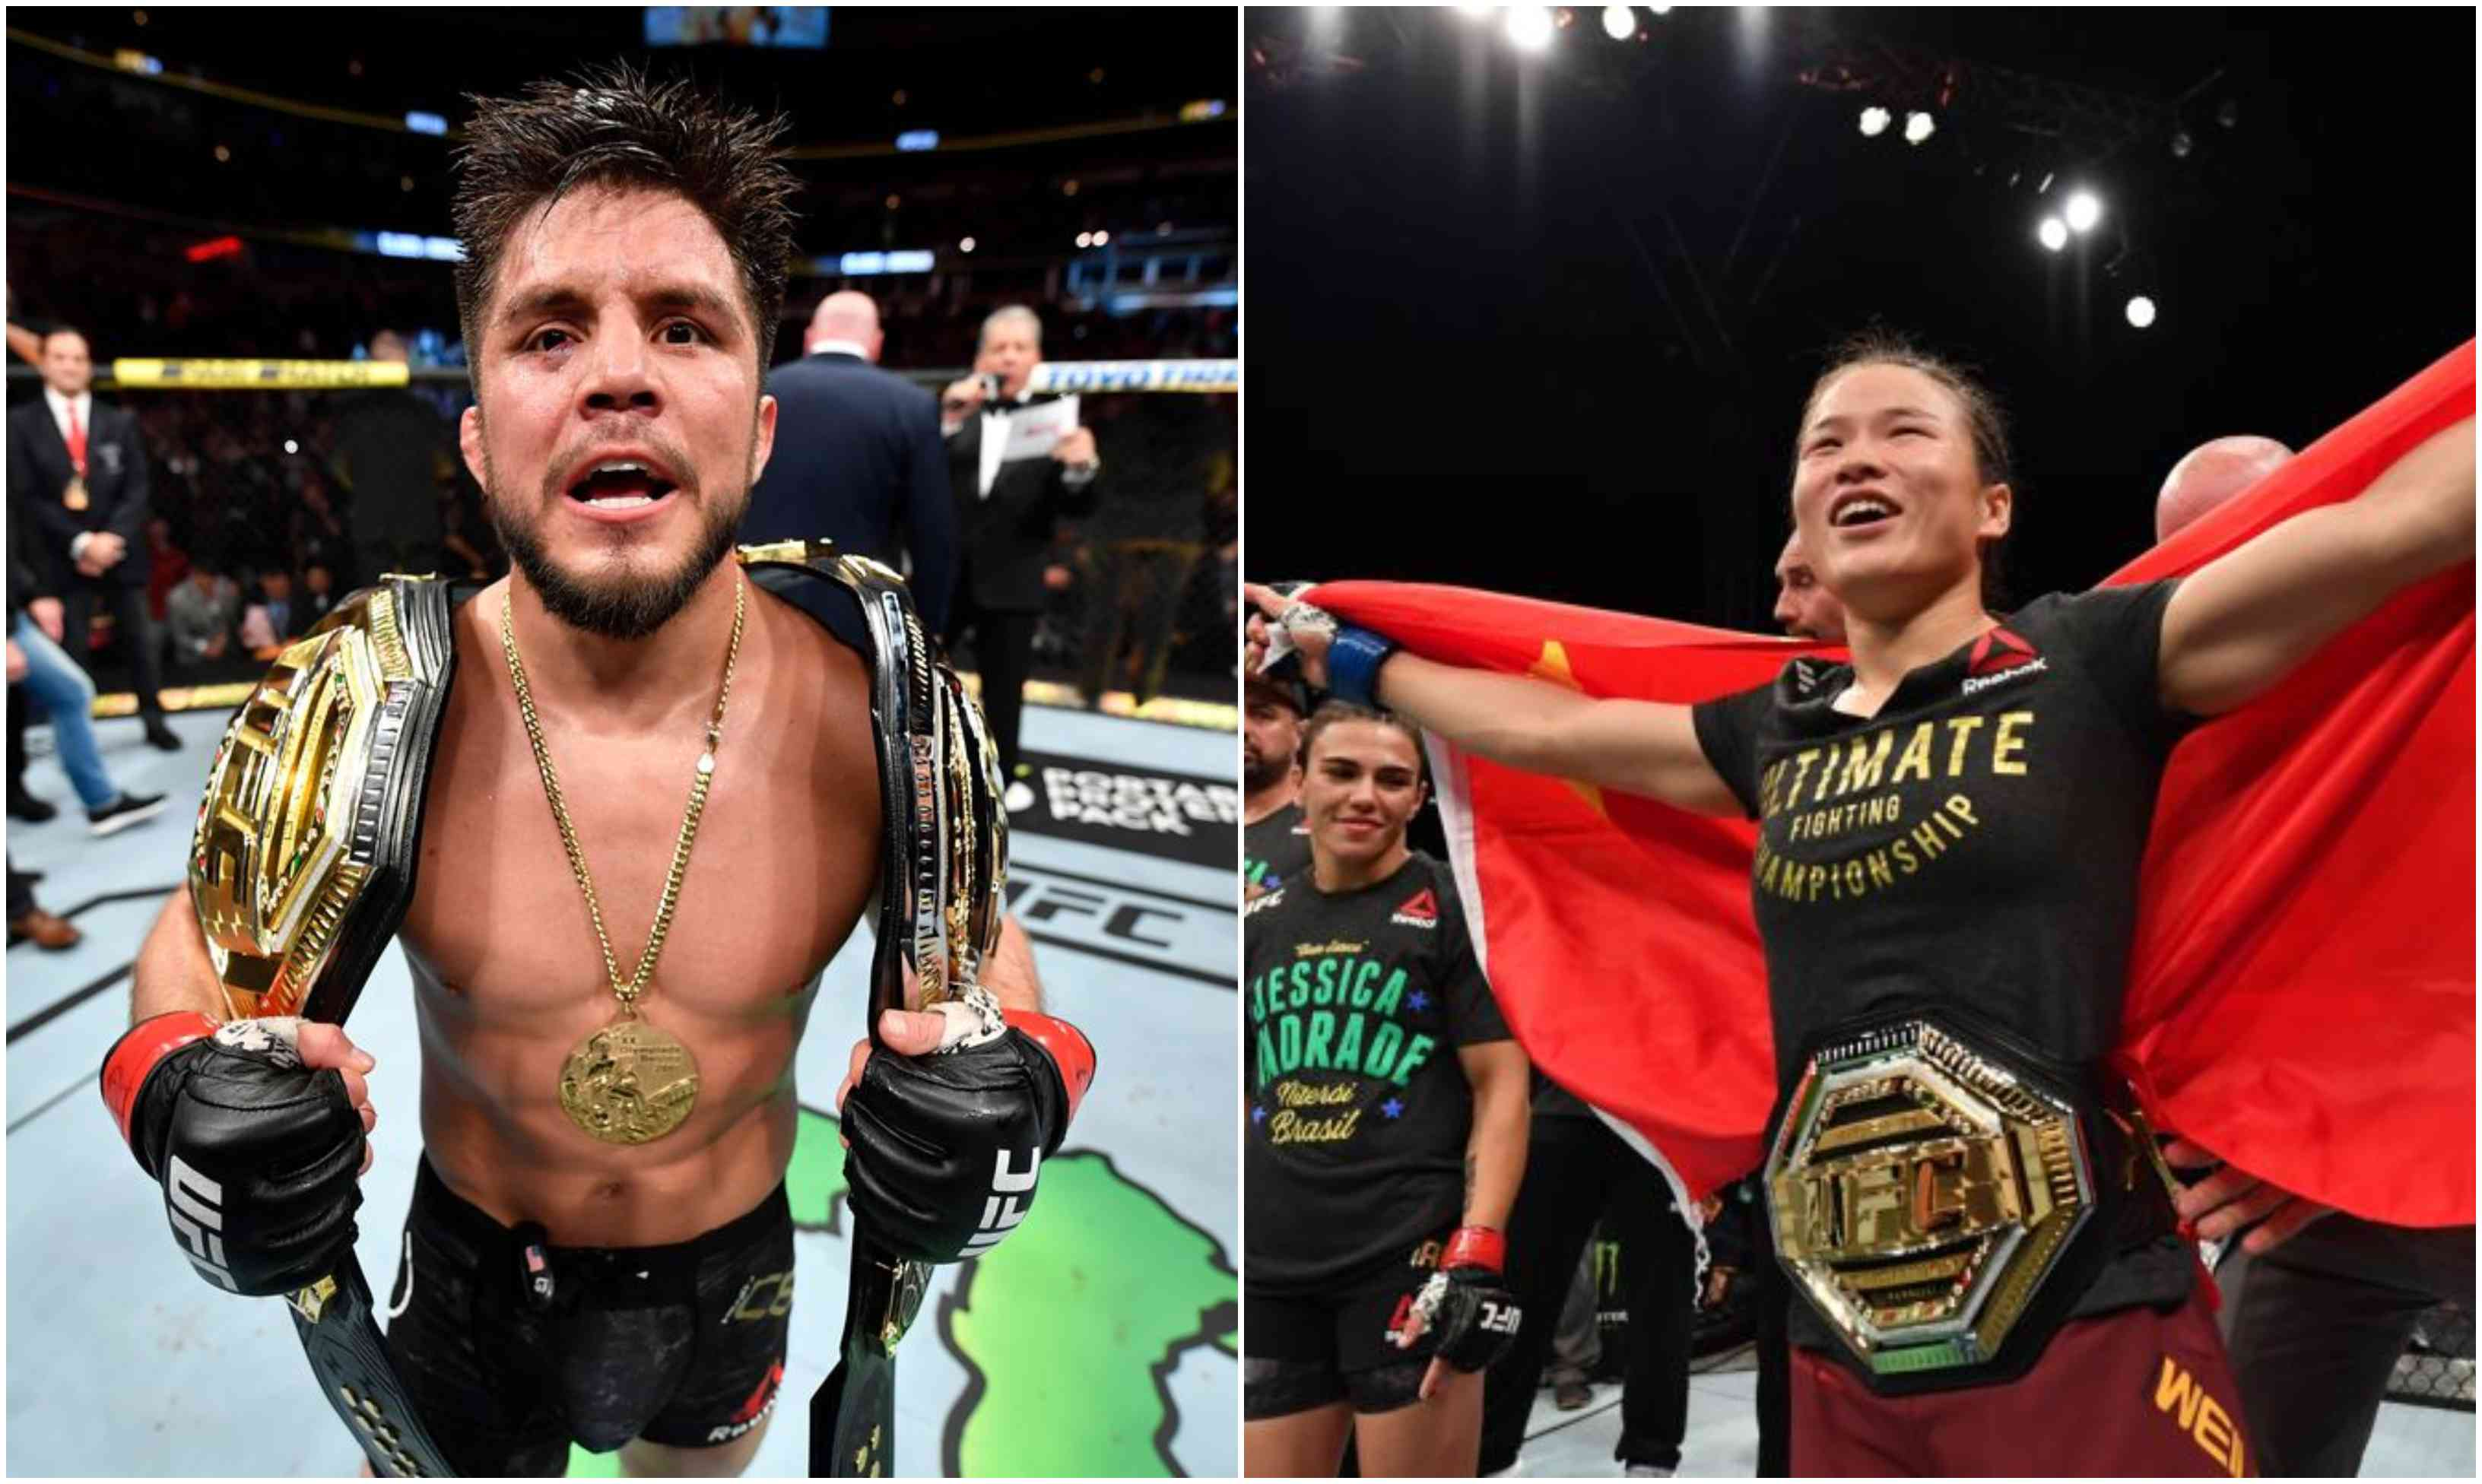 Weili Zhang tells Henry Cejudo to get a sex change; Triple C asks her to bend the knee! - Weili